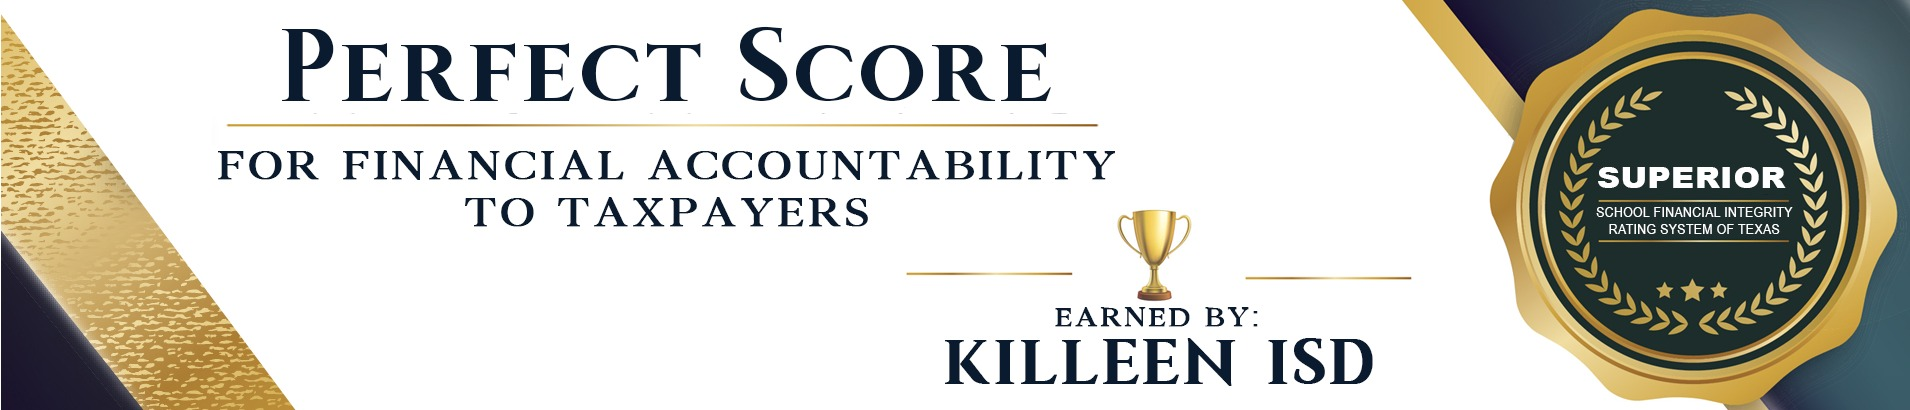 Perfect Score for financial accountability banner